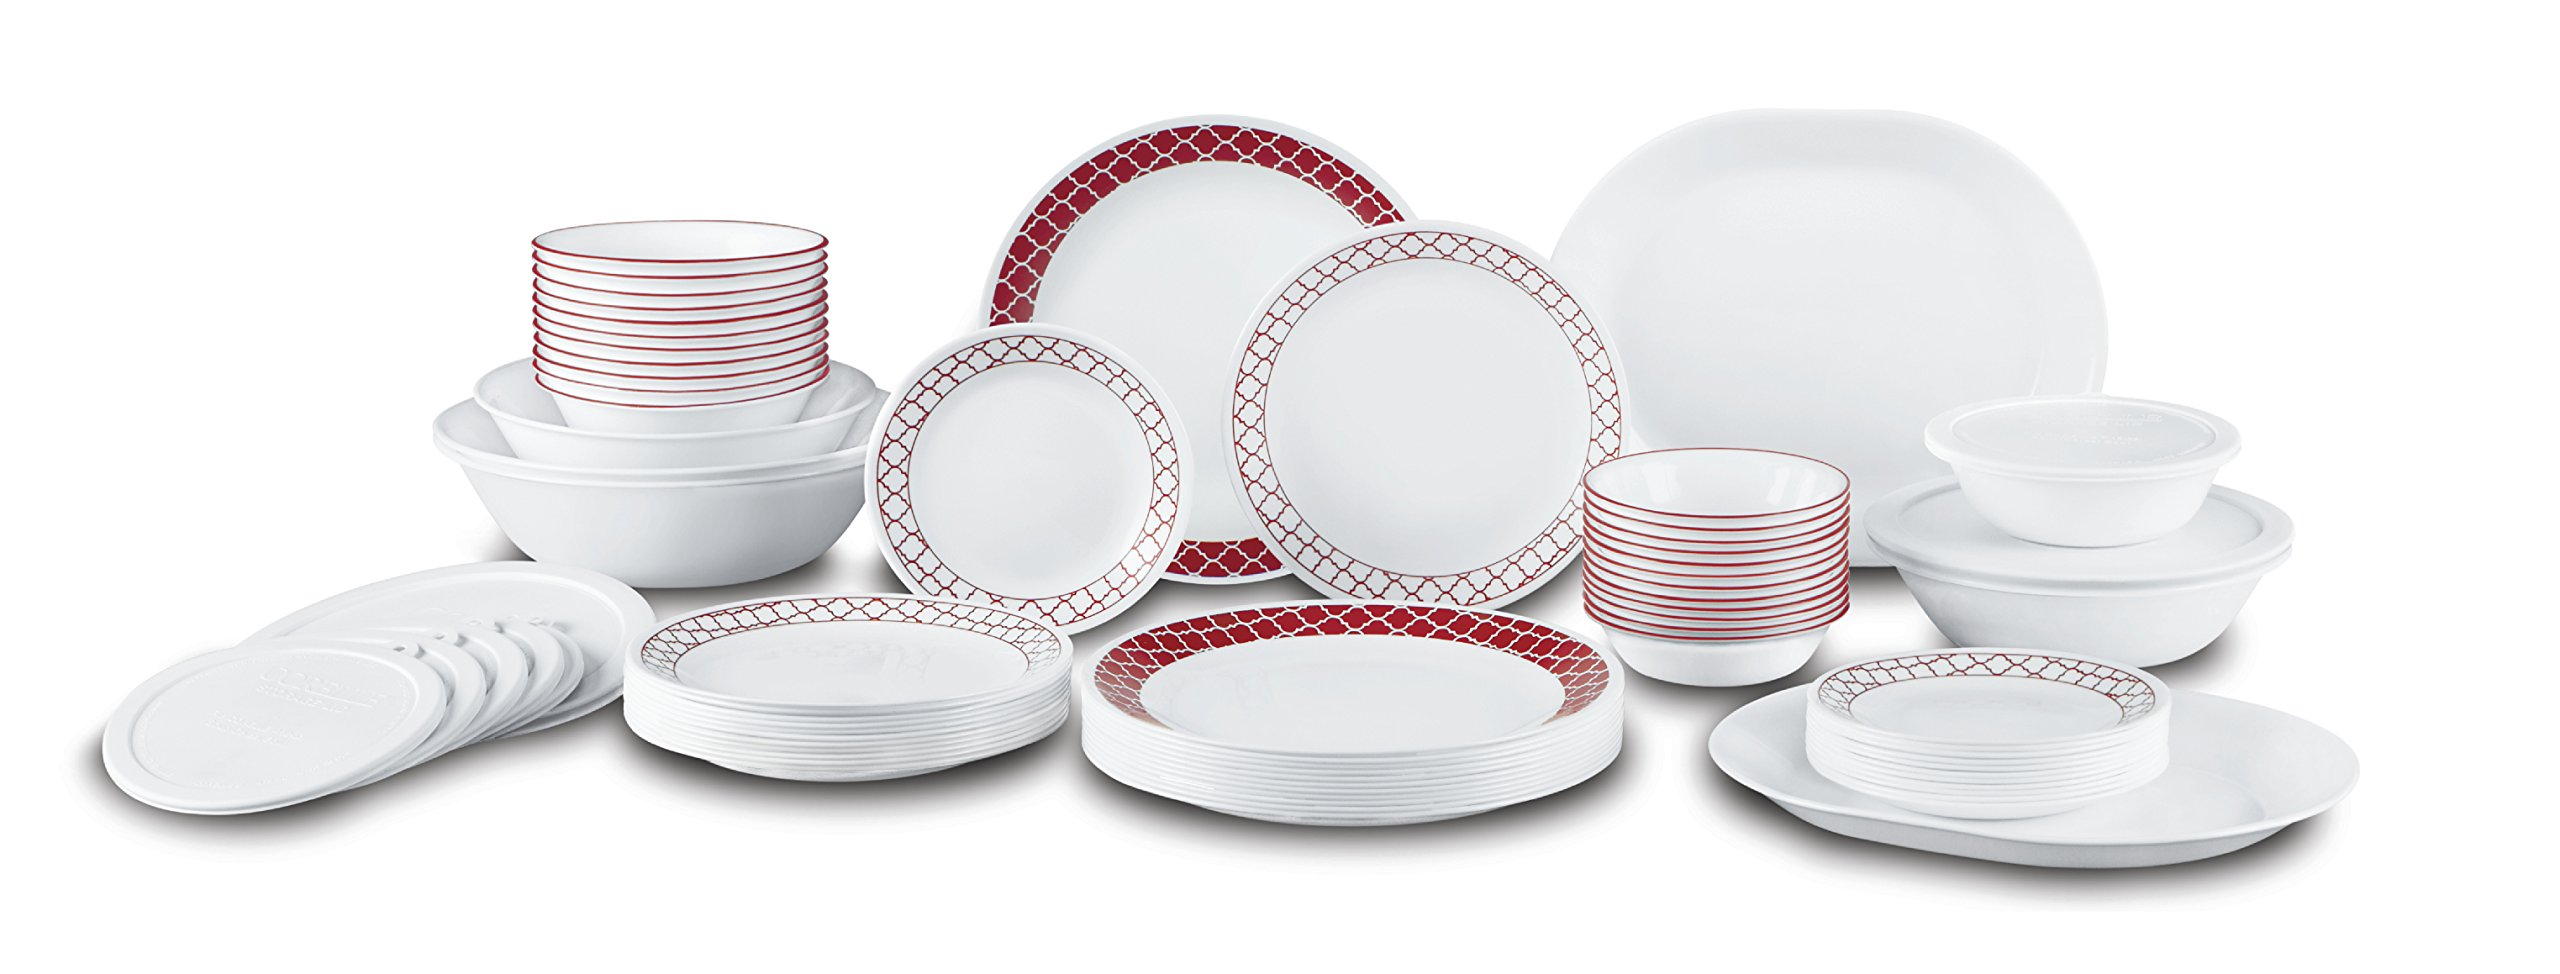 Corelle Livingware 74 Piece Crimson Trellis Dinnerware Set with Storage Lids, White